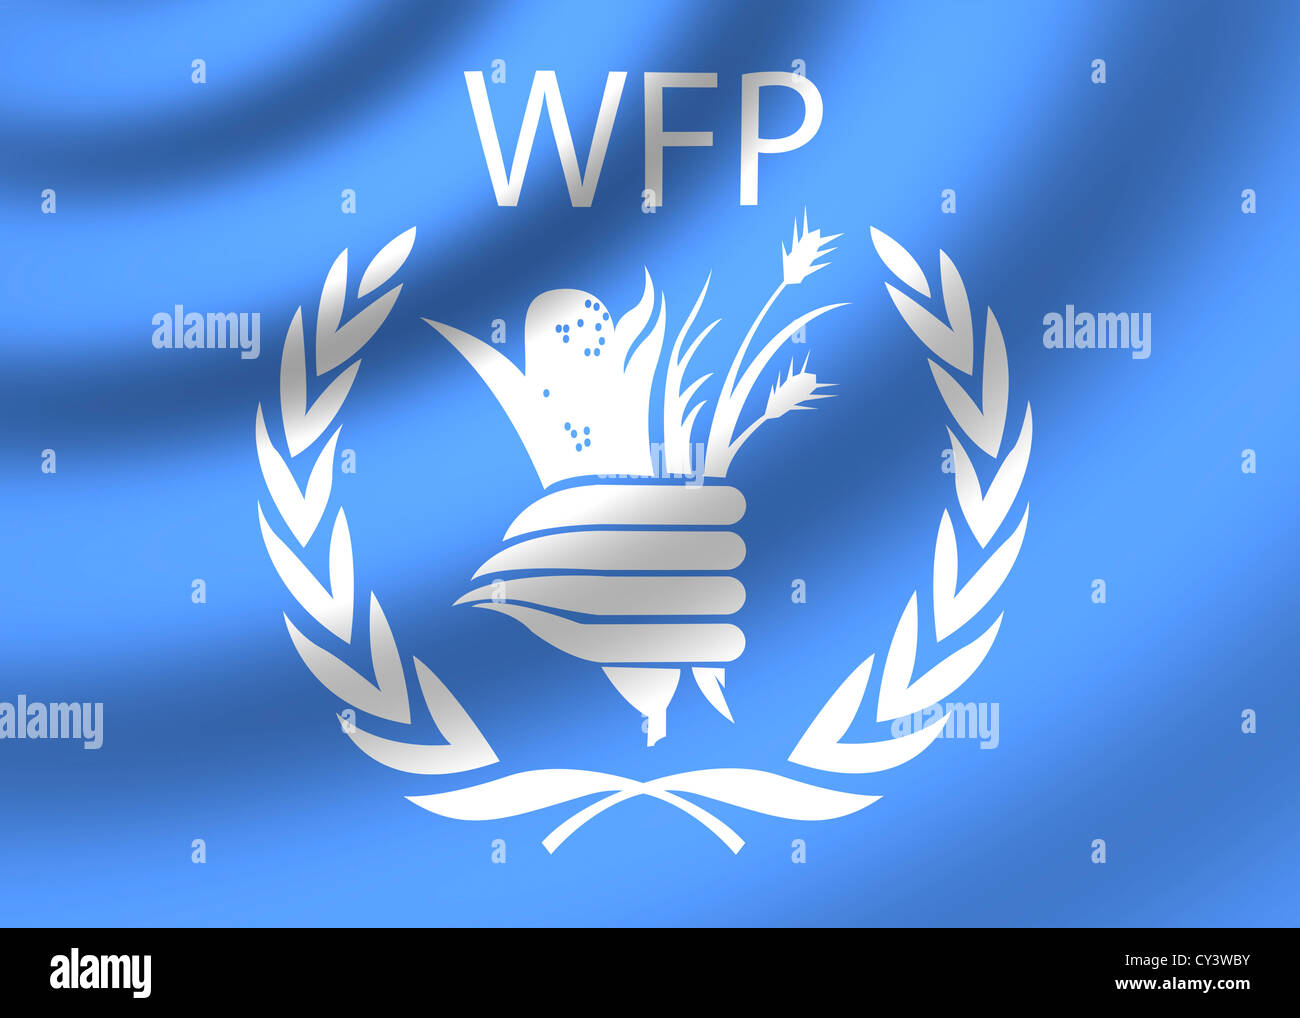 Wfp World Food Programme Logo Flag Symbol Icon Stock Photo Alamy